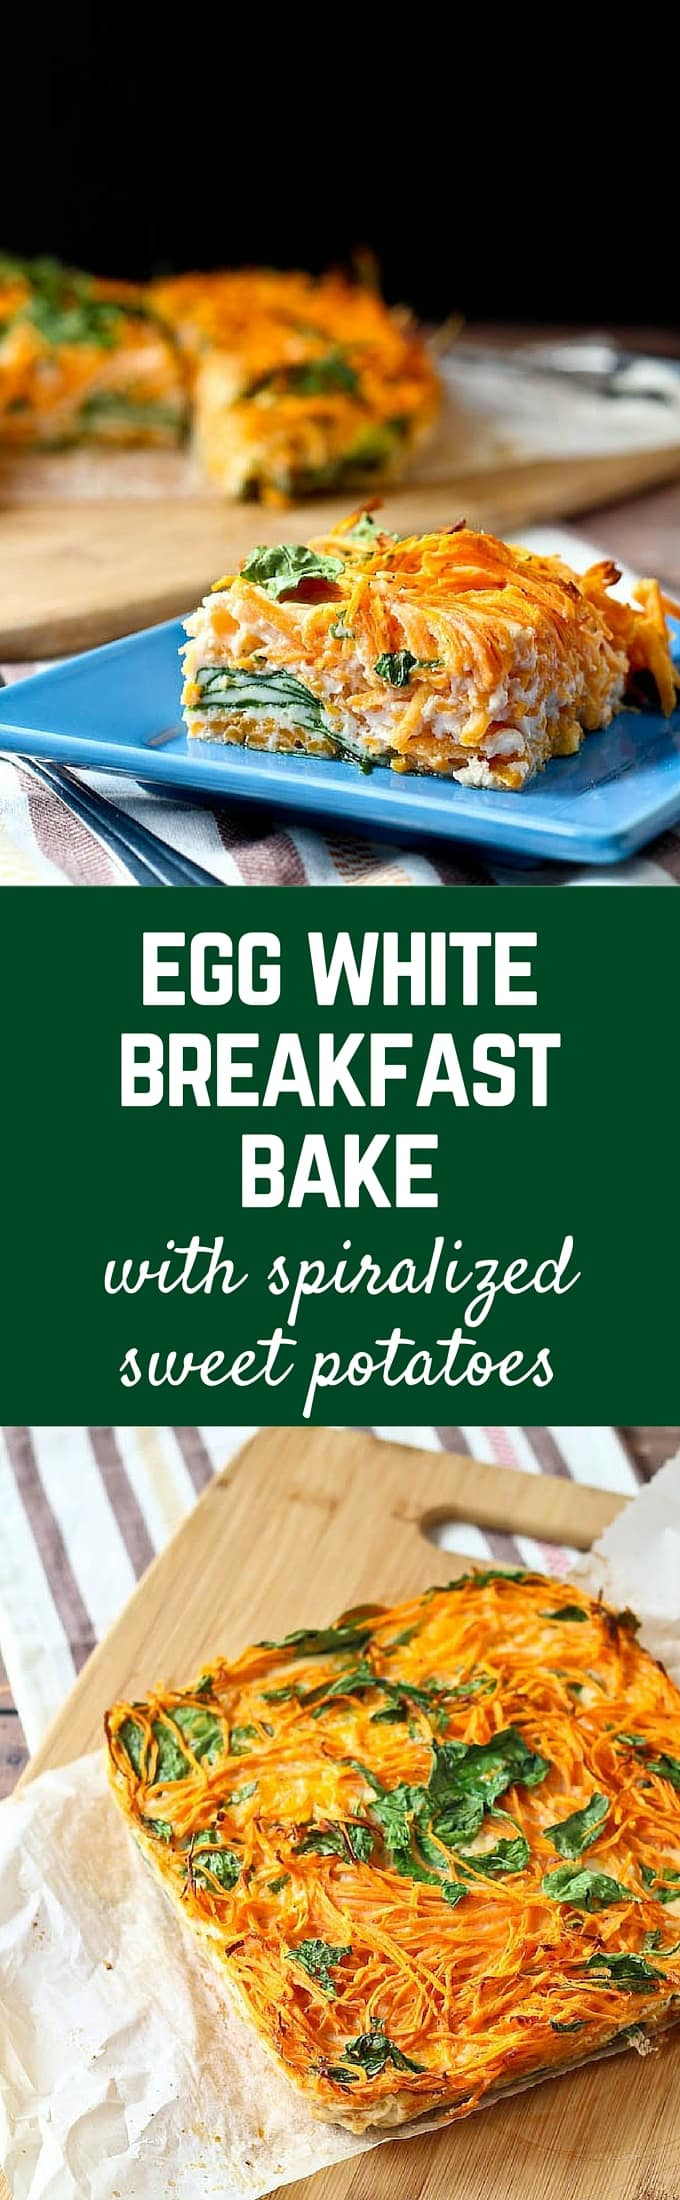 Egg White Breakfast Recipes Healthy  Egg White Breakfast Bake with Sweet Potato and Spinach